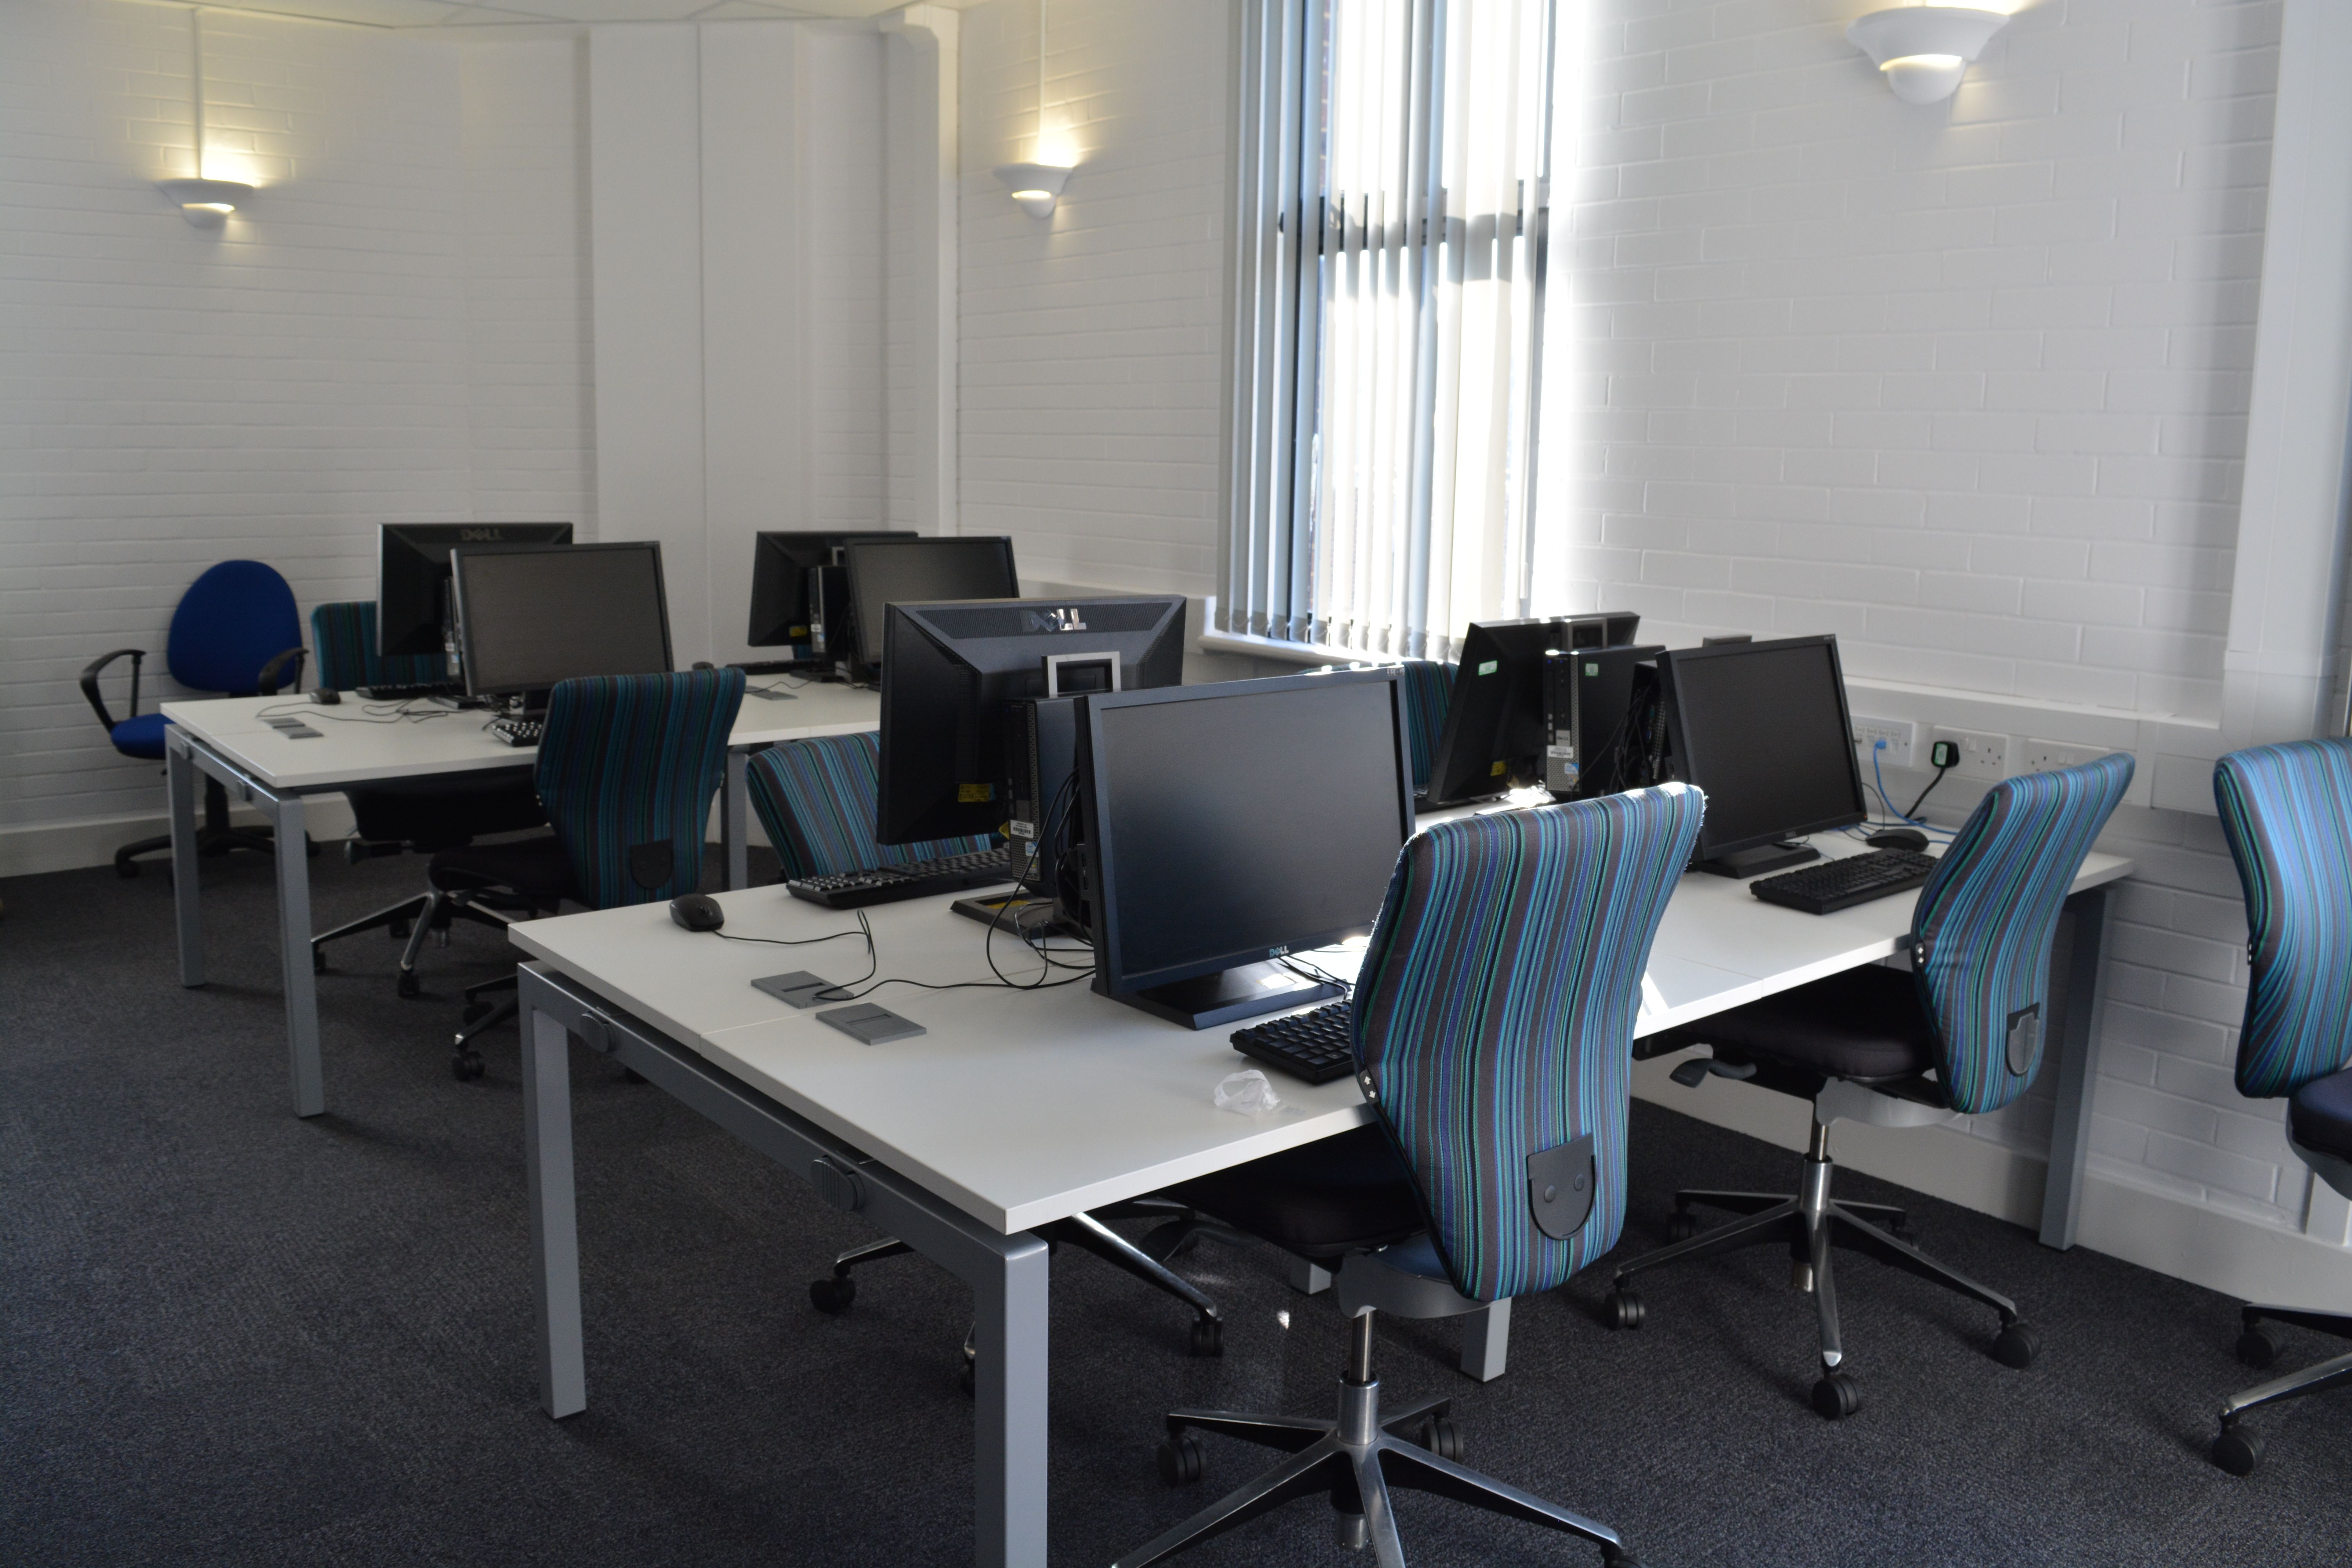 New technology suite space with ergonomic seating for academy.  East Kent College (Computer Labs) - Dover, Kent  www.rapinteriors.co.uk